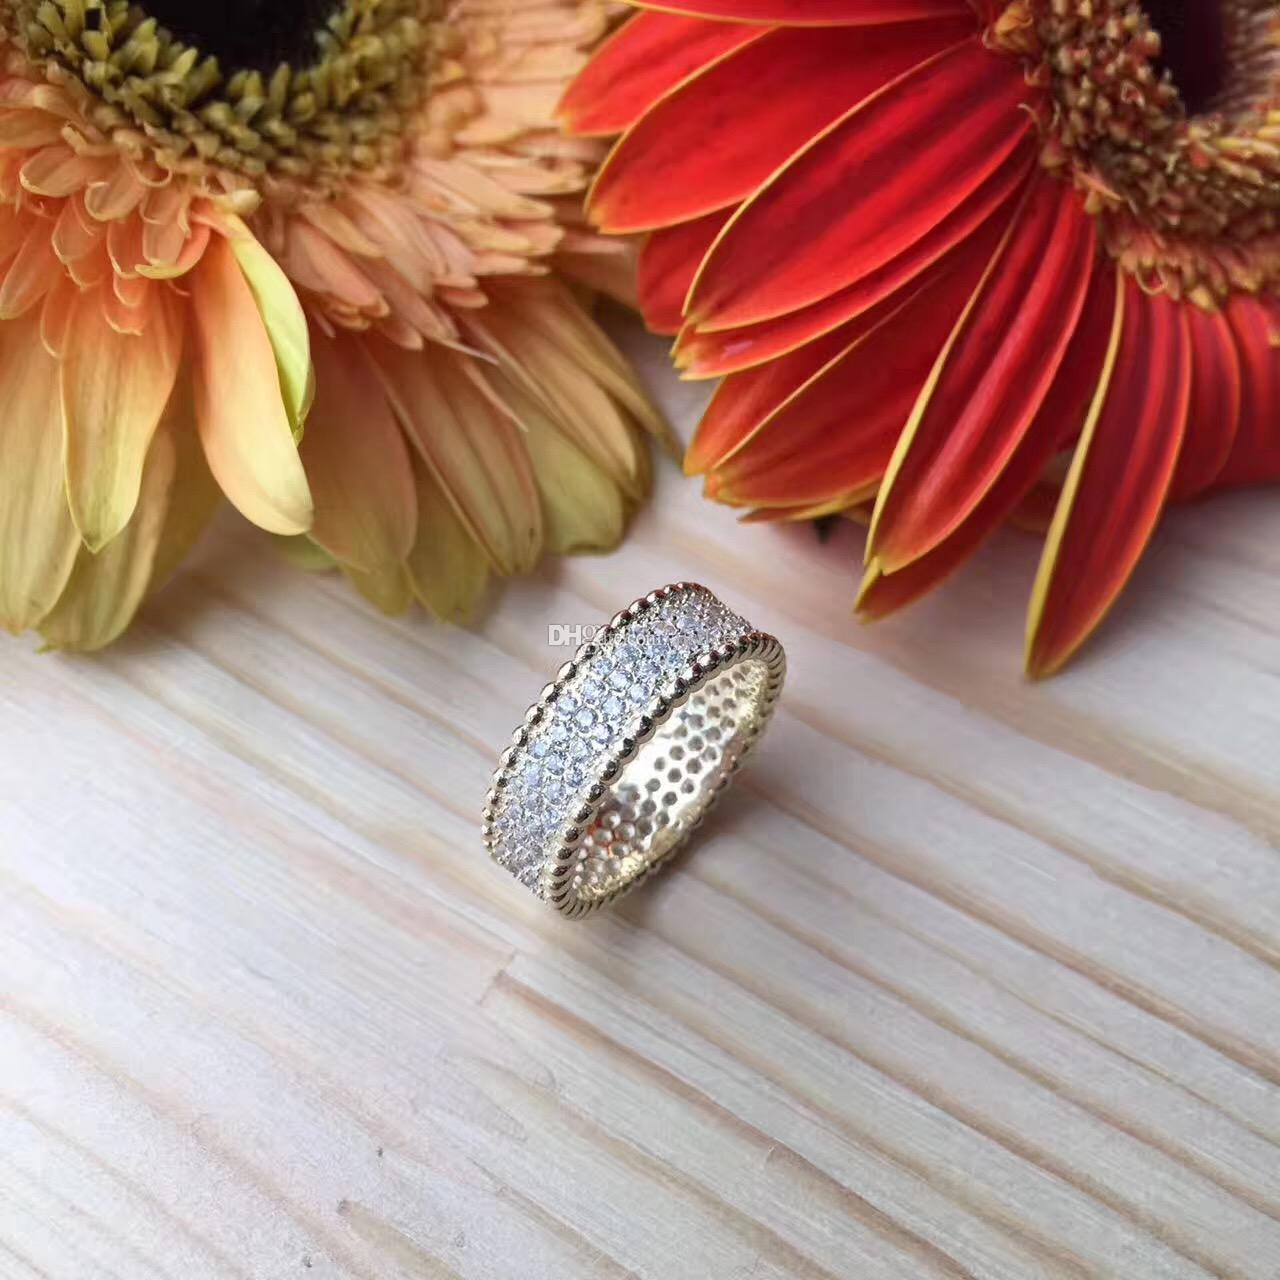 2017 Best Classic Design Wedding Band Jewelry Cubic Zircon Crystal Pave  Rings High Quality Fashion Clear Stone Ring 925 Sterling Silver In 2017 Classic Daisy Flower Band Rings (View 4 of 25)